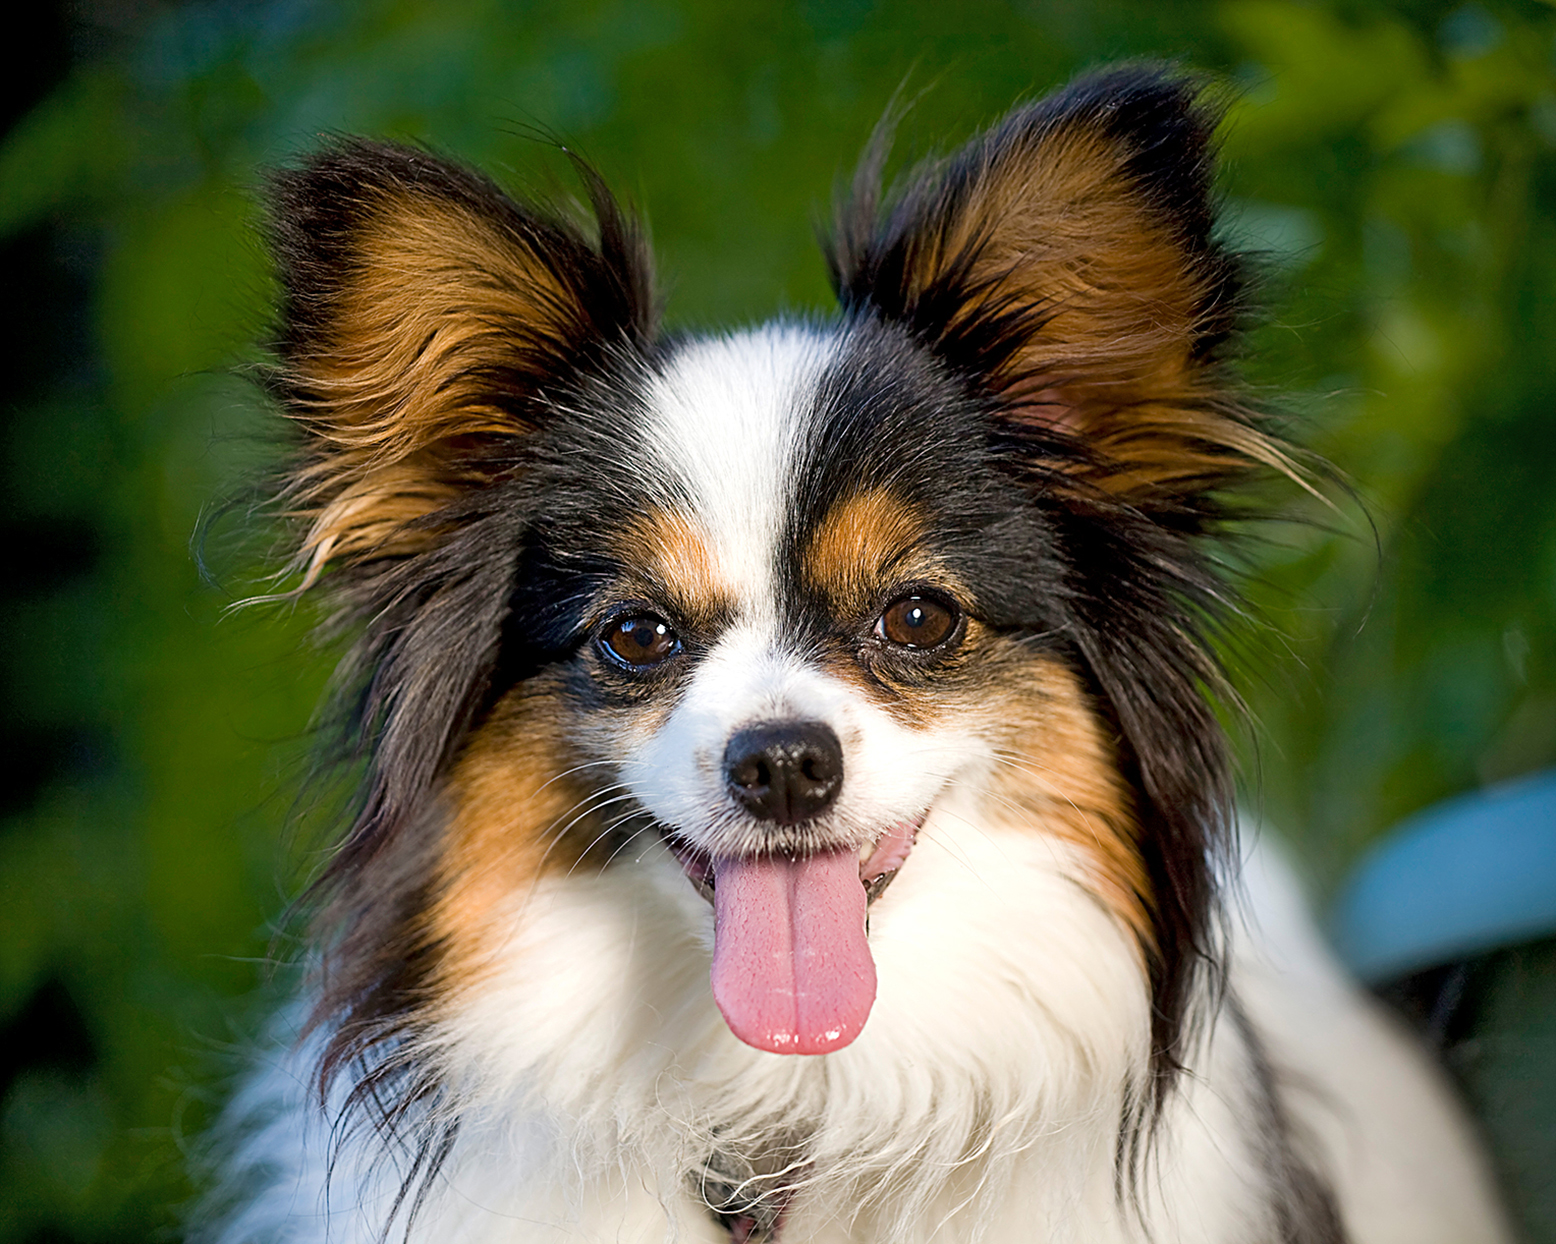 closeup of a papillon looking at the camera with her tongue out